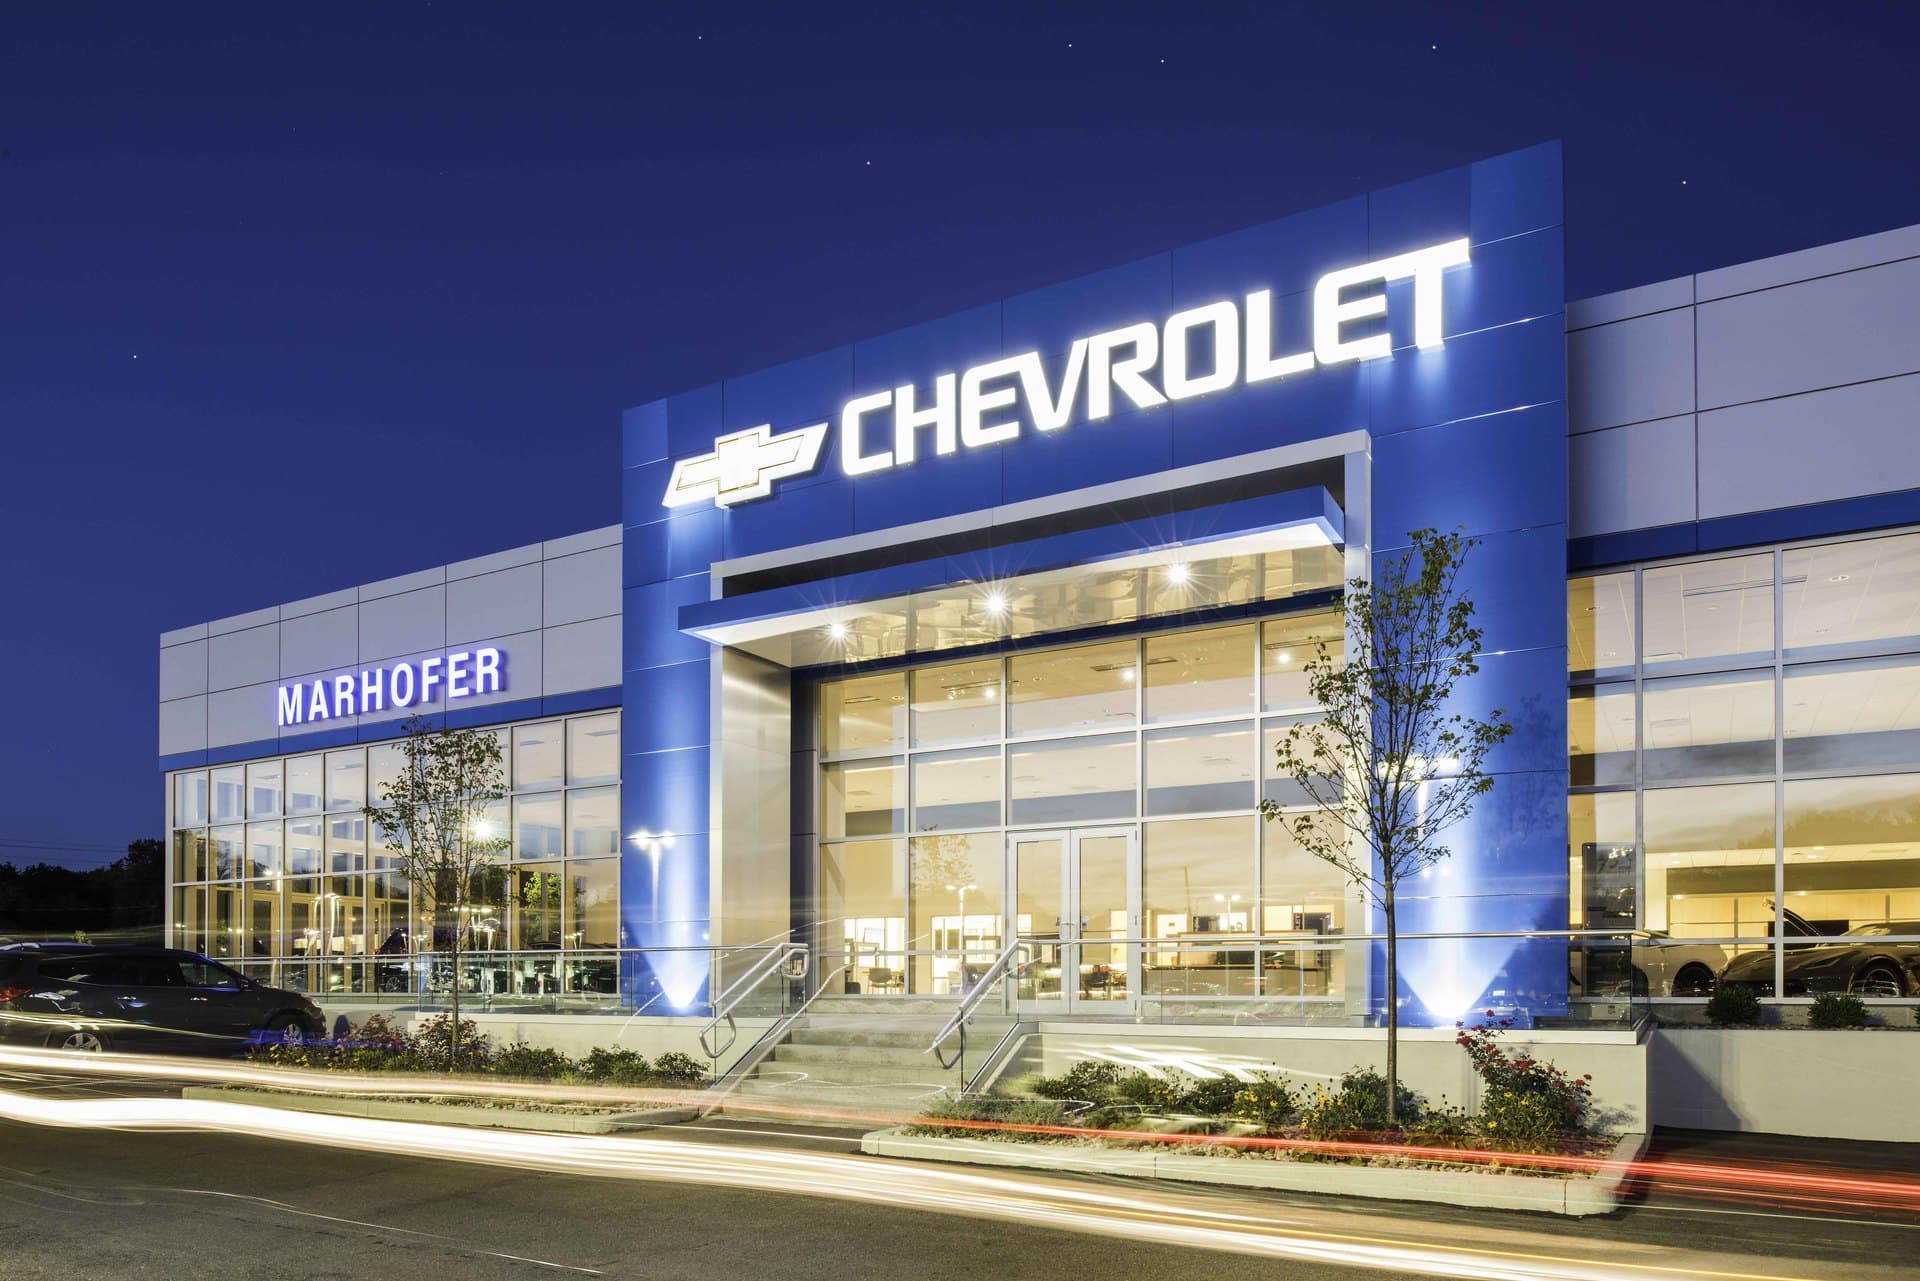 Marhofer Chevrolet new construction